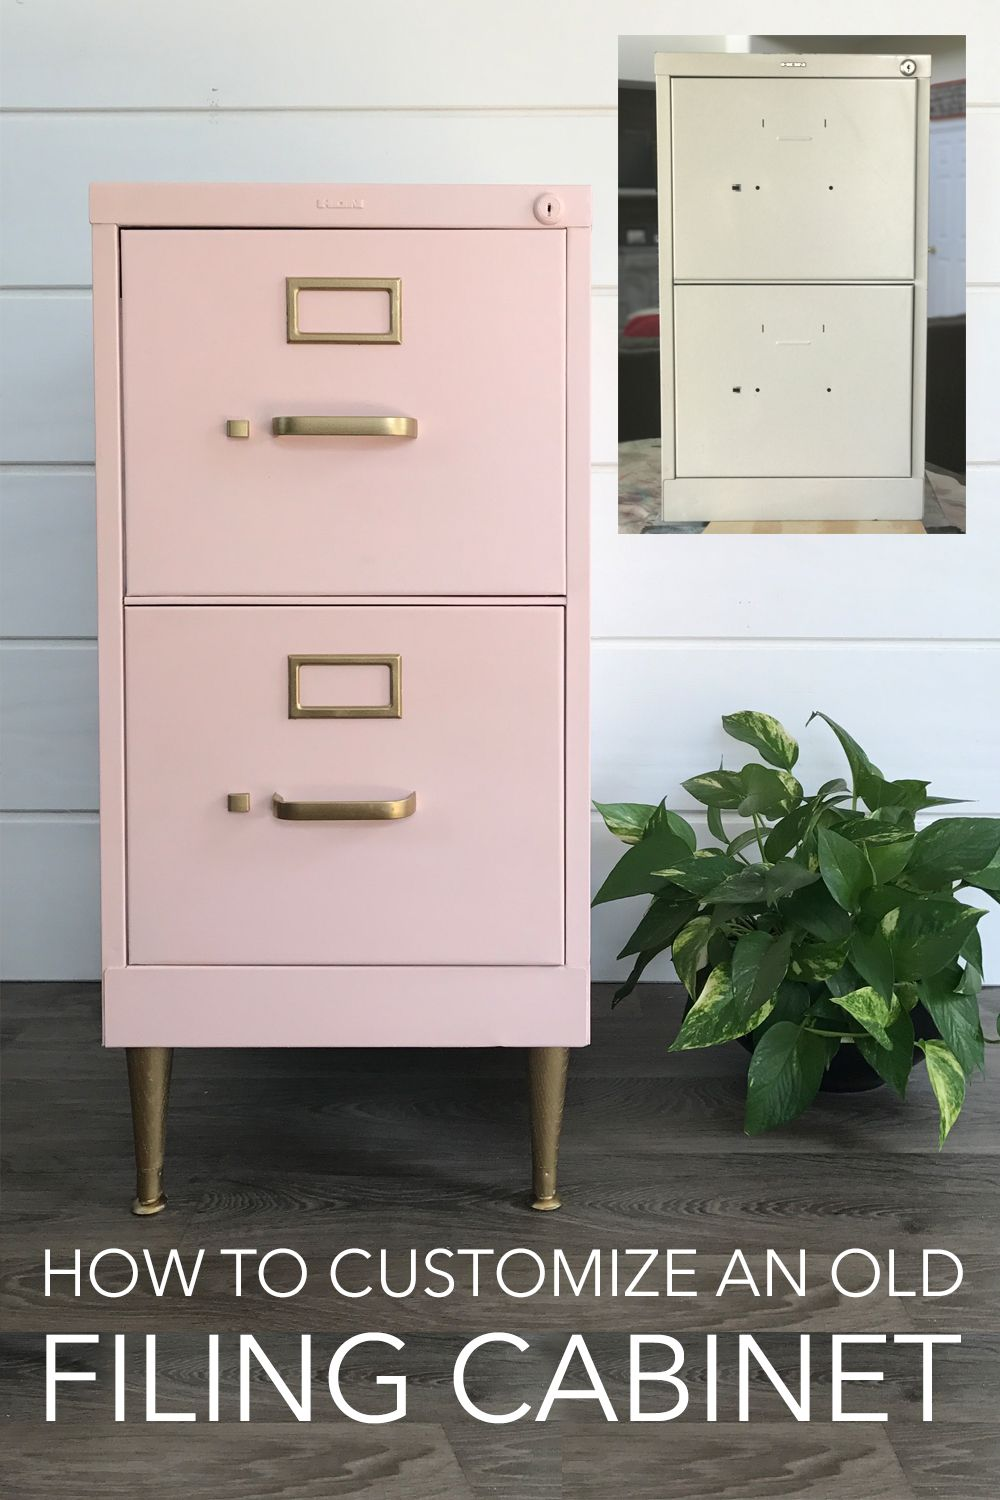 Filing Cabinet Makeover - File cabinet makeover, Filing cabinet, Diy office, Diy file cabinet, Painted file cabinets, Furniture makeover diy - Give a boring filing cabinet a cool, new look with chalk paint and legs!